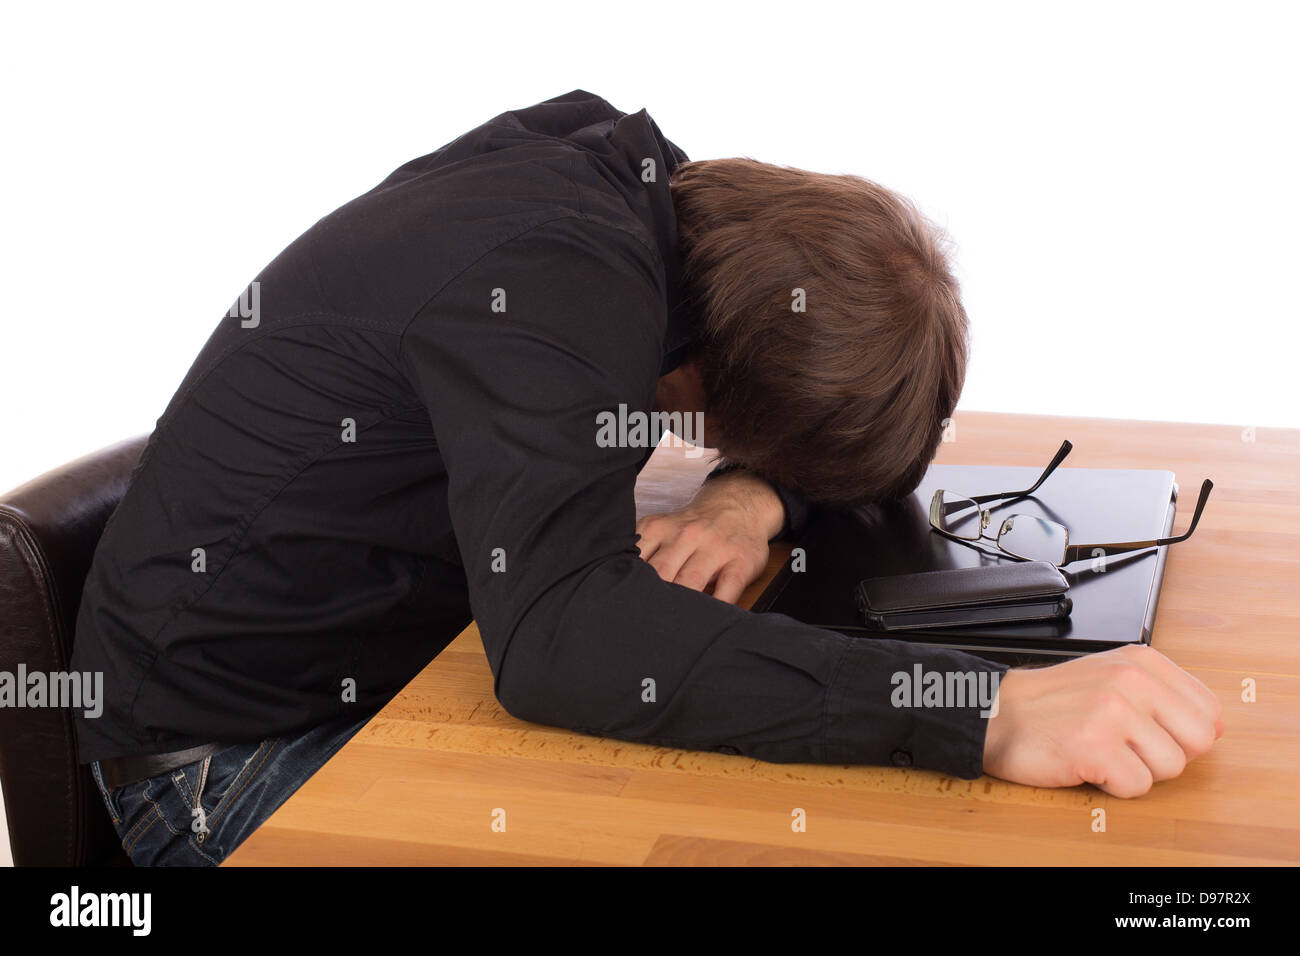 Business man sleep on his laptop. Isolated on a white background. - Stock Image